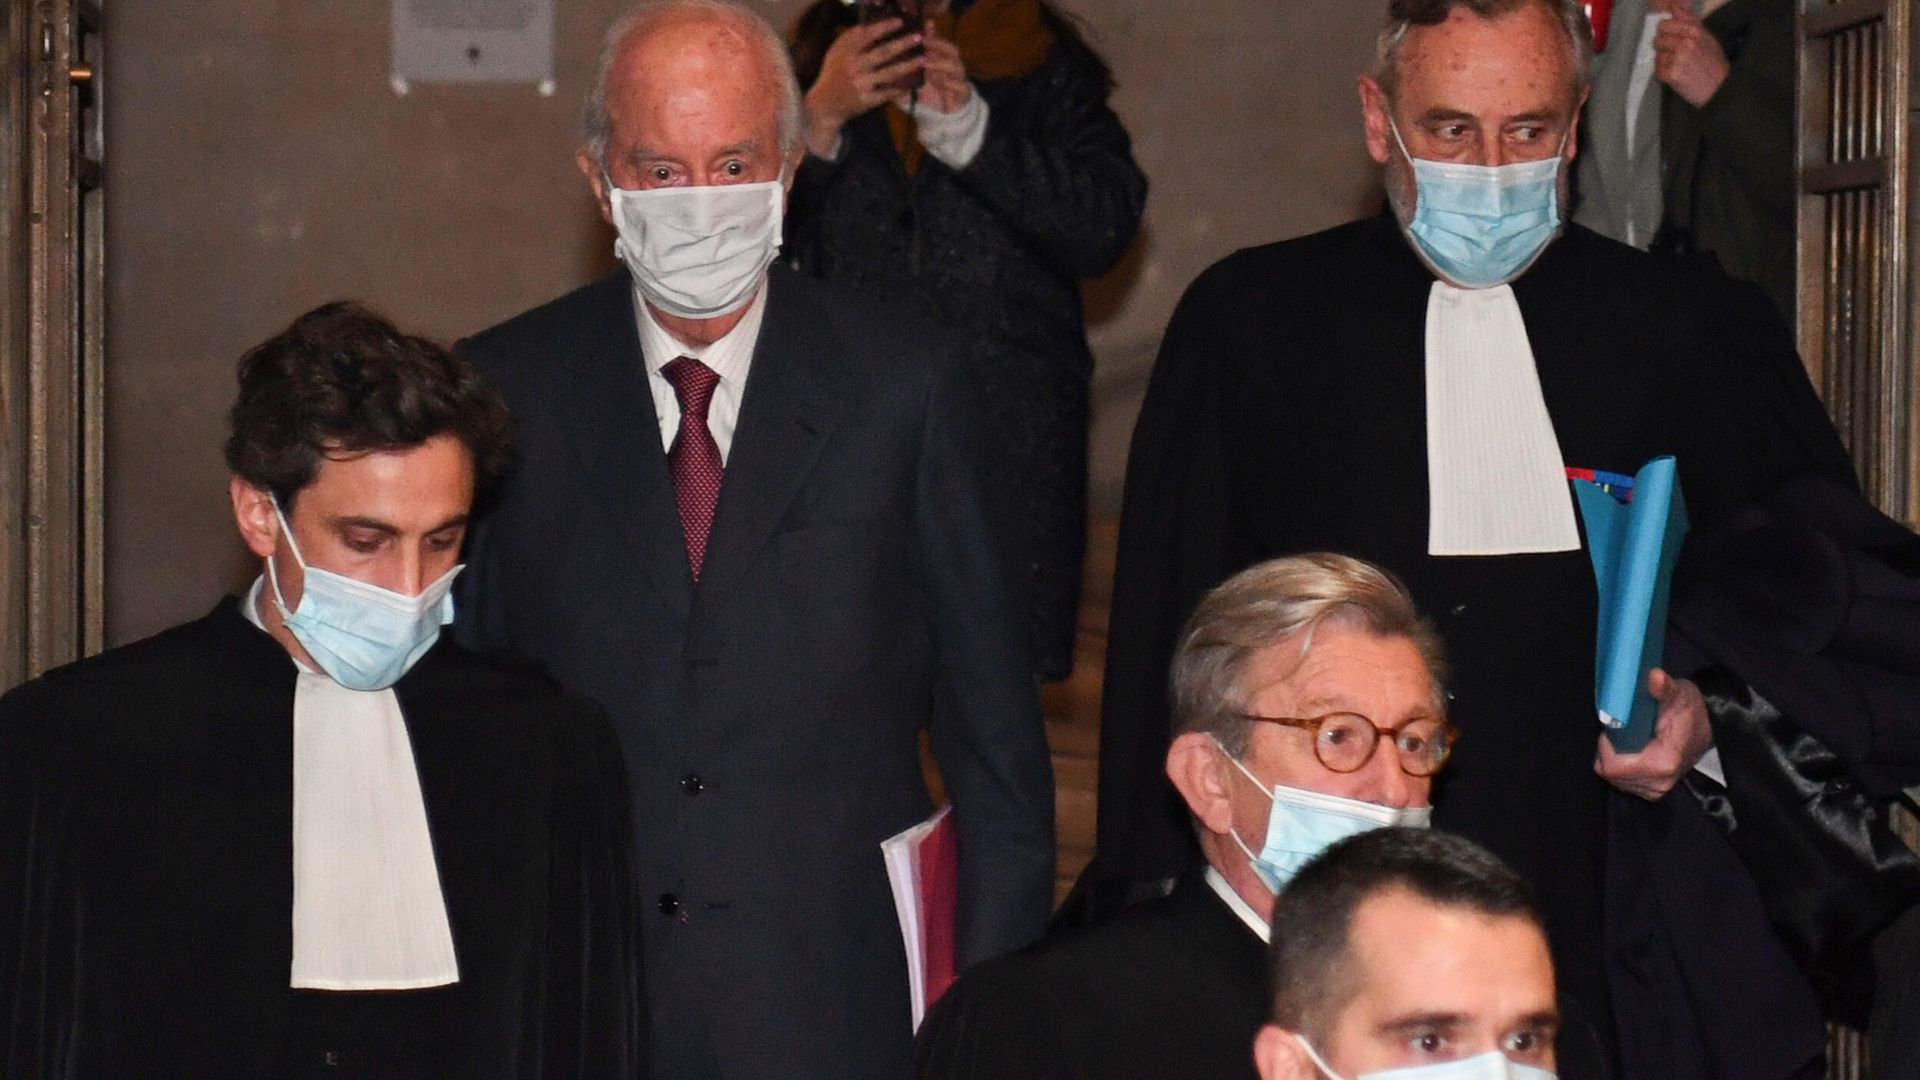 French former prime minister Edouard Balladur (second left) arrives for his trial at the Court of Justice of the Republic, in Paris - Credit: AFP via Getty Images